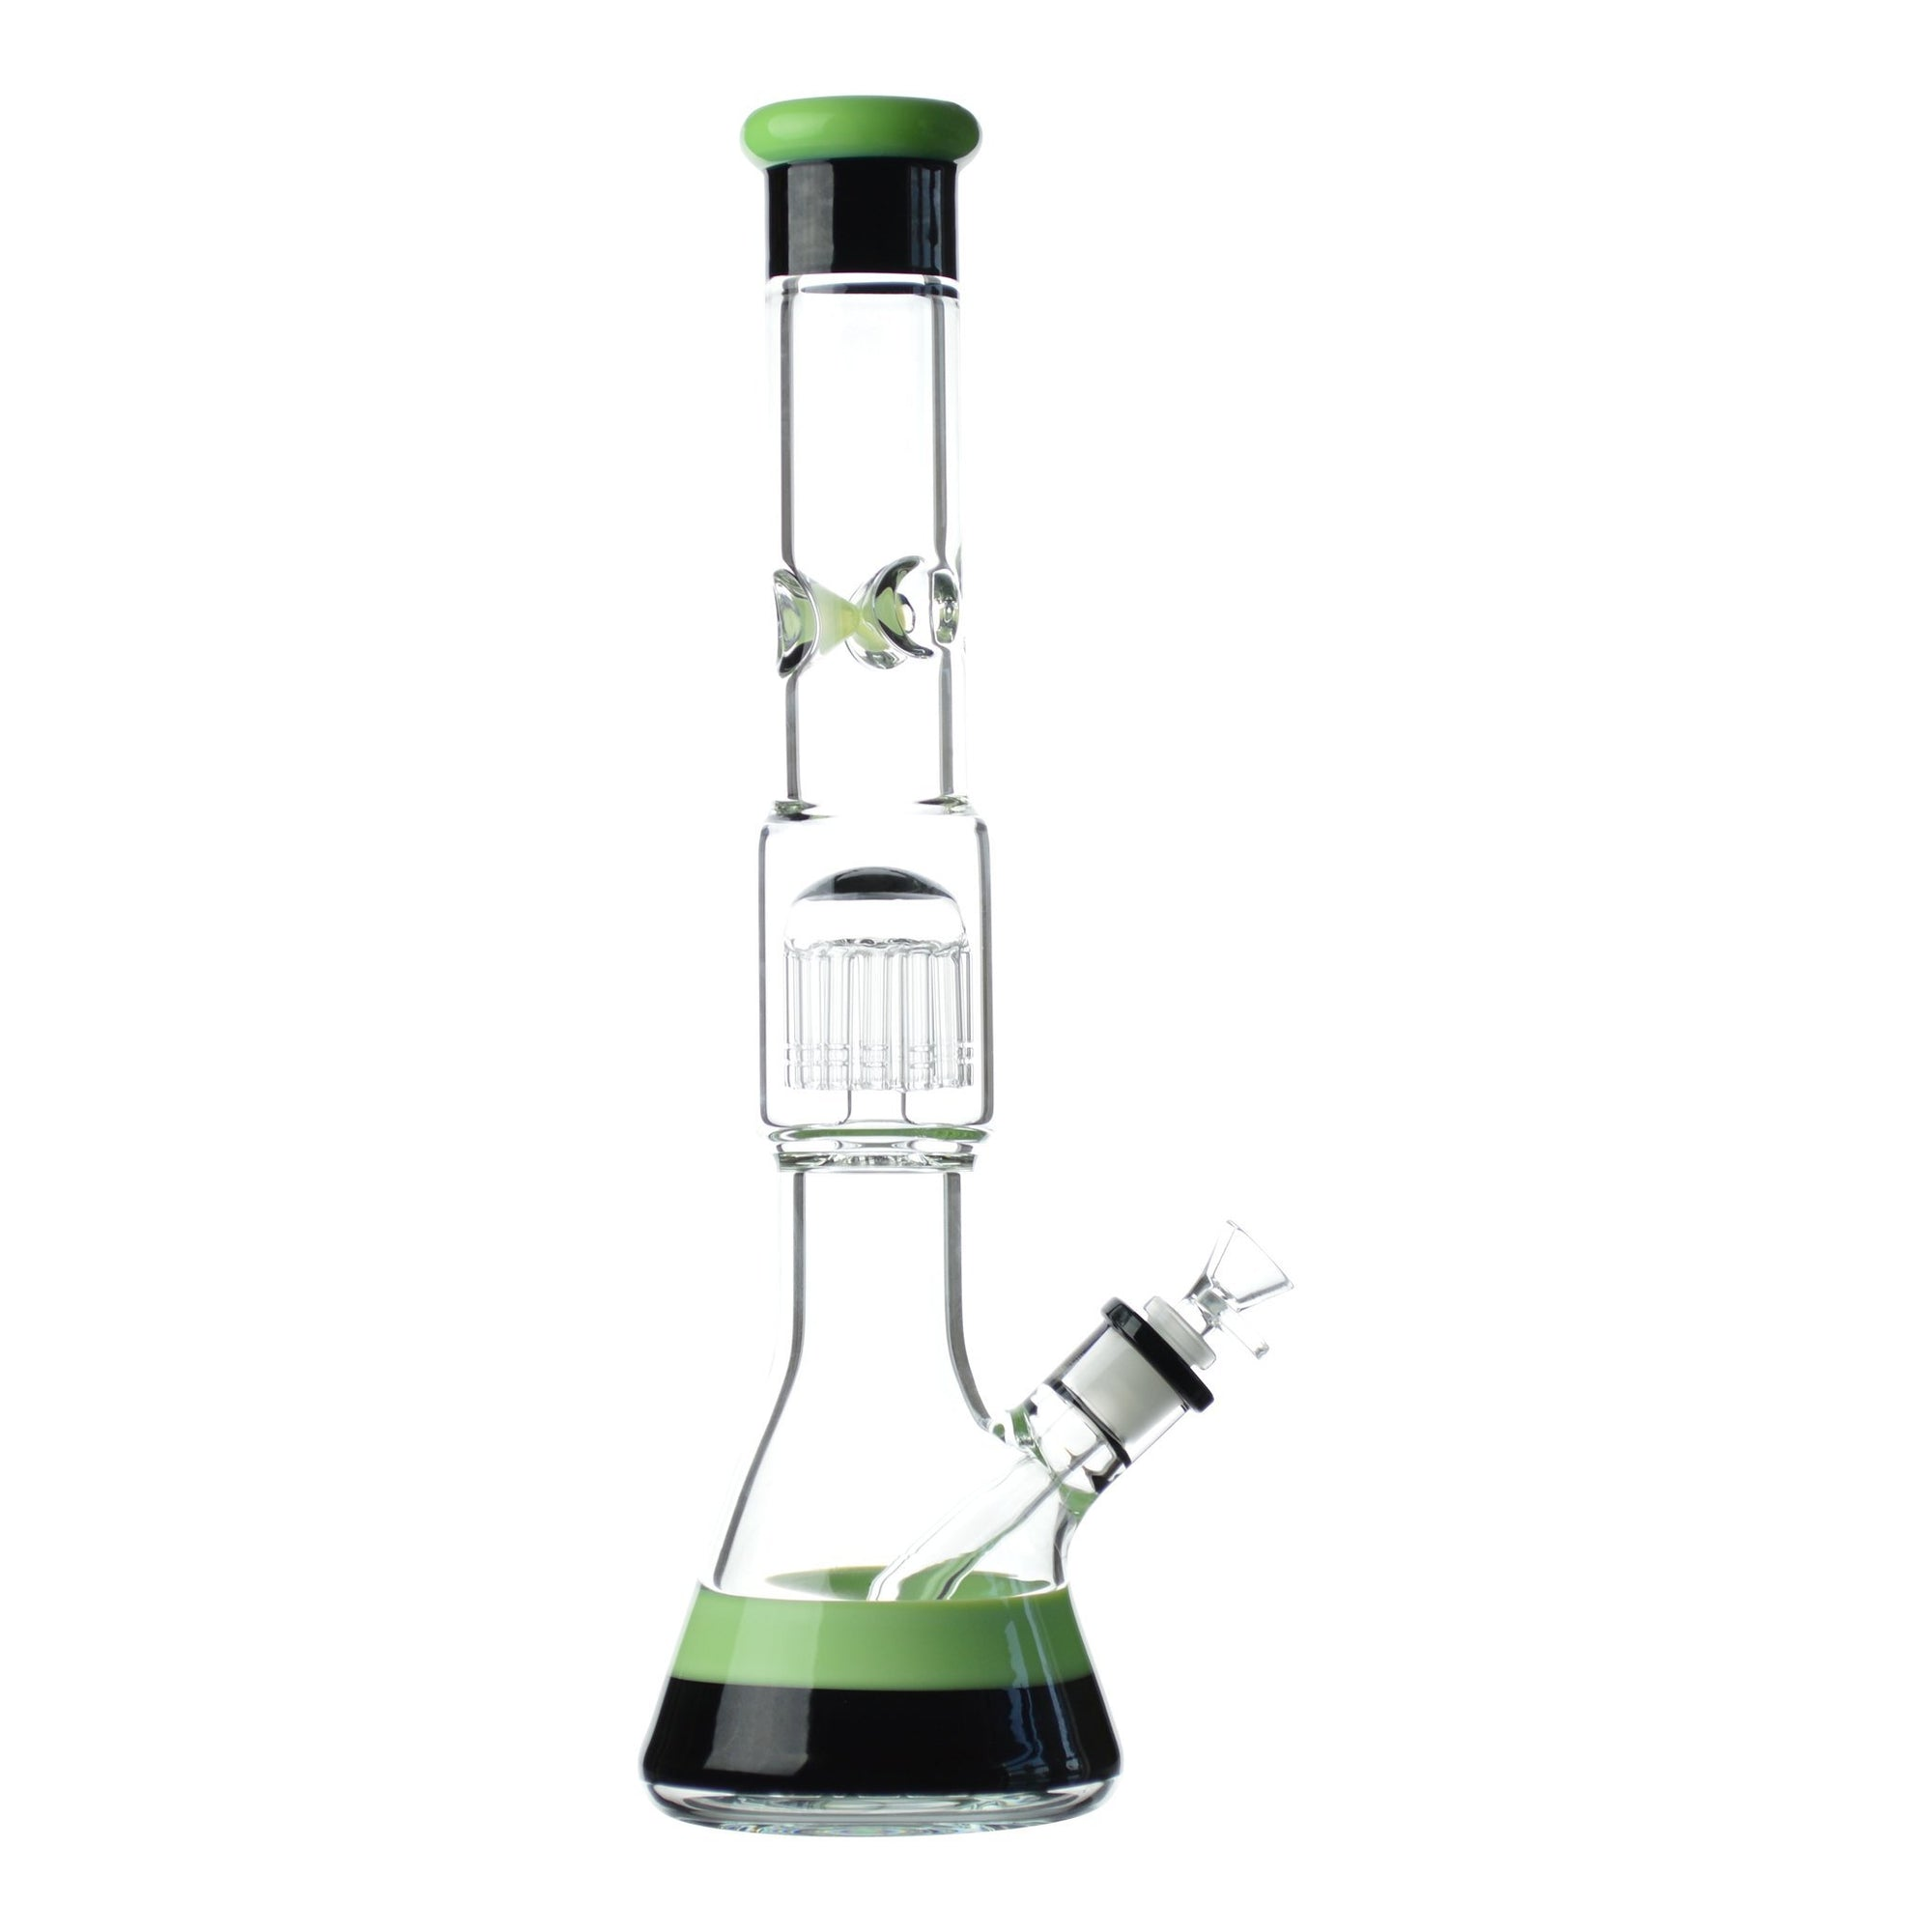 Full shot 18 inch beaker bong with green and black accents on mouthpiece, neck perc base and bowl with black accents on right